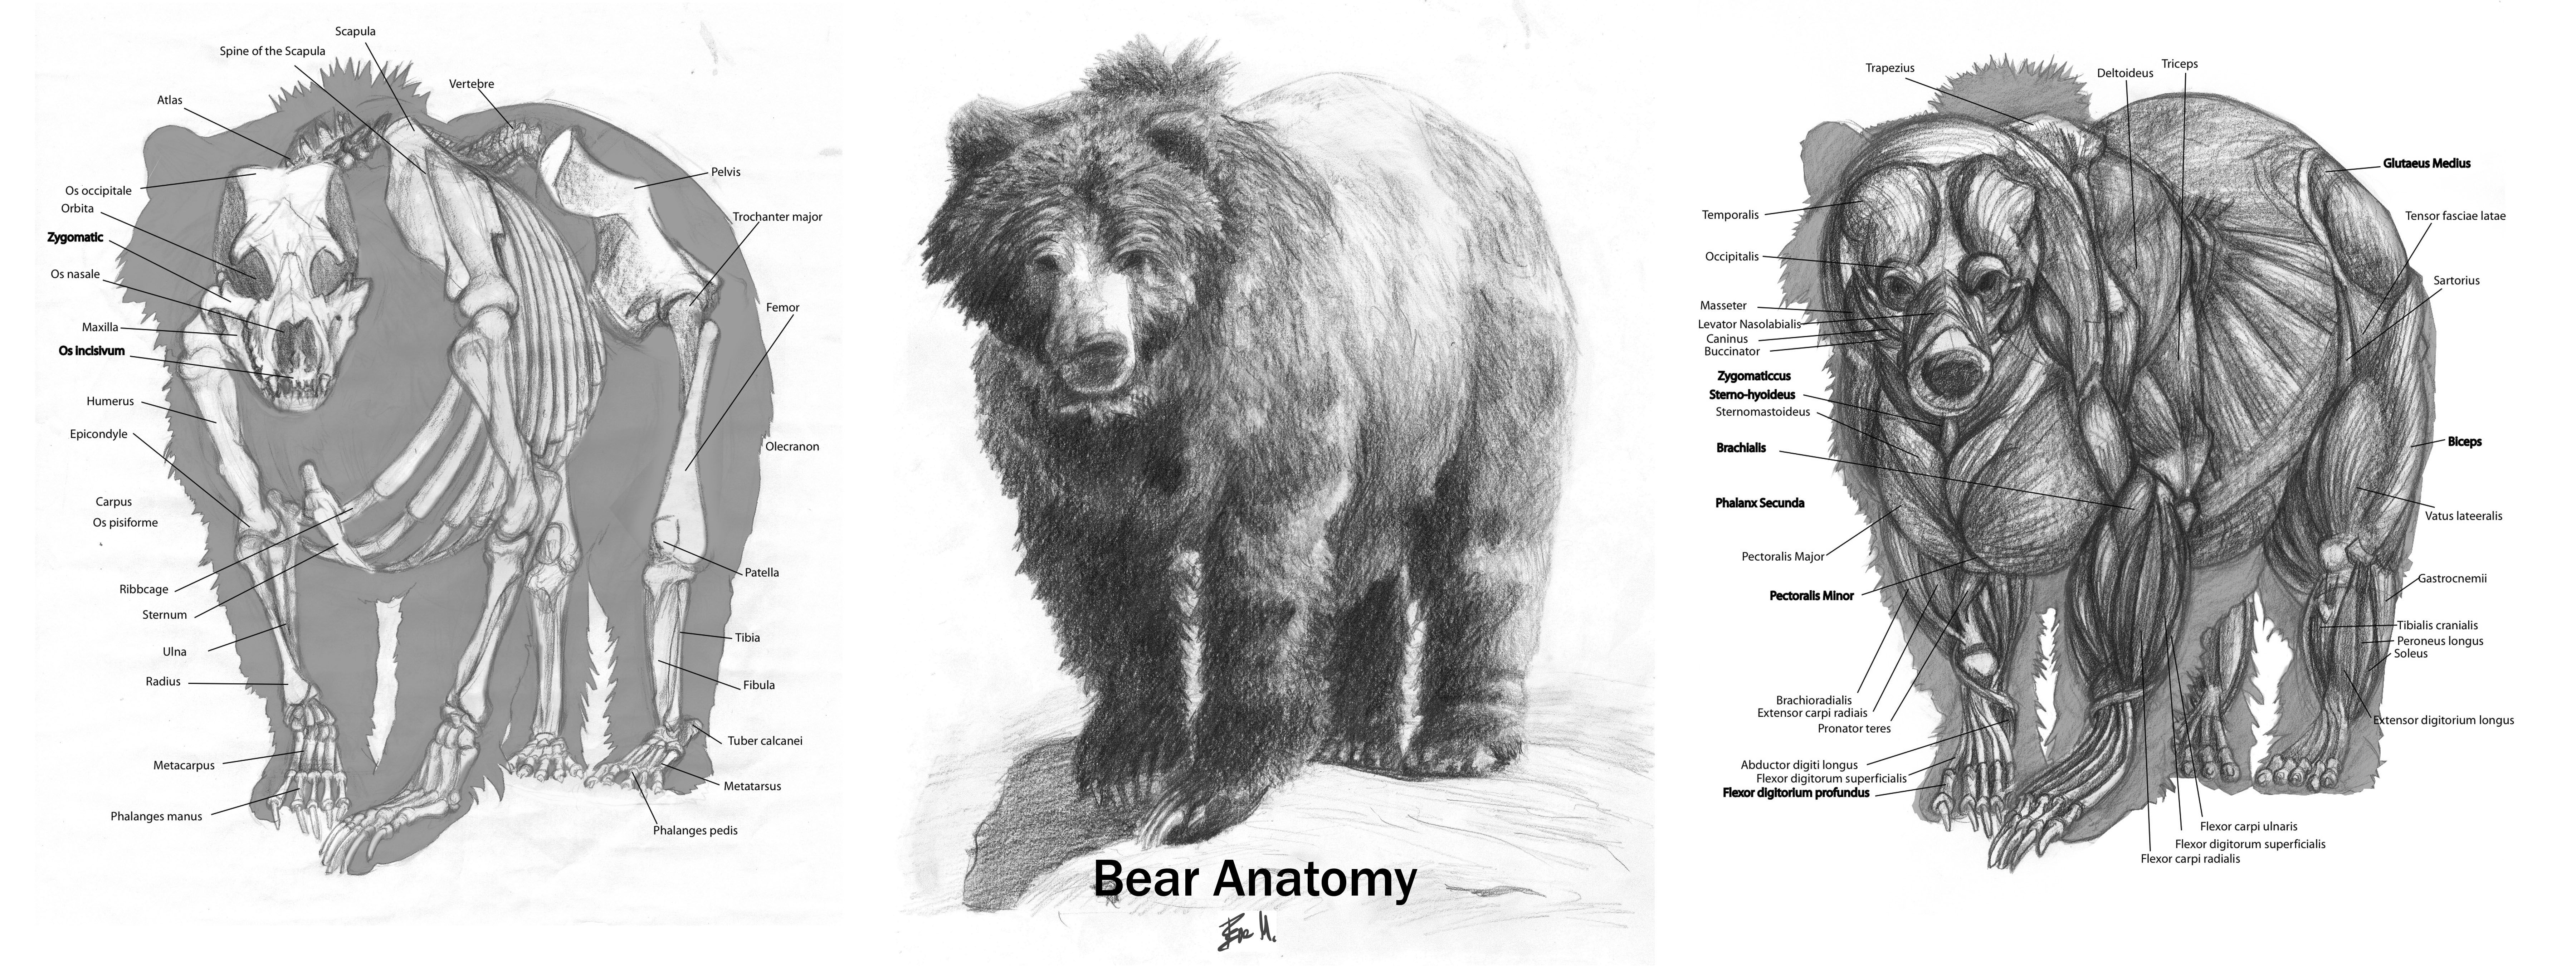 Animal Anatomy Grizzly Bear By 89ravenclaw On Deviantart